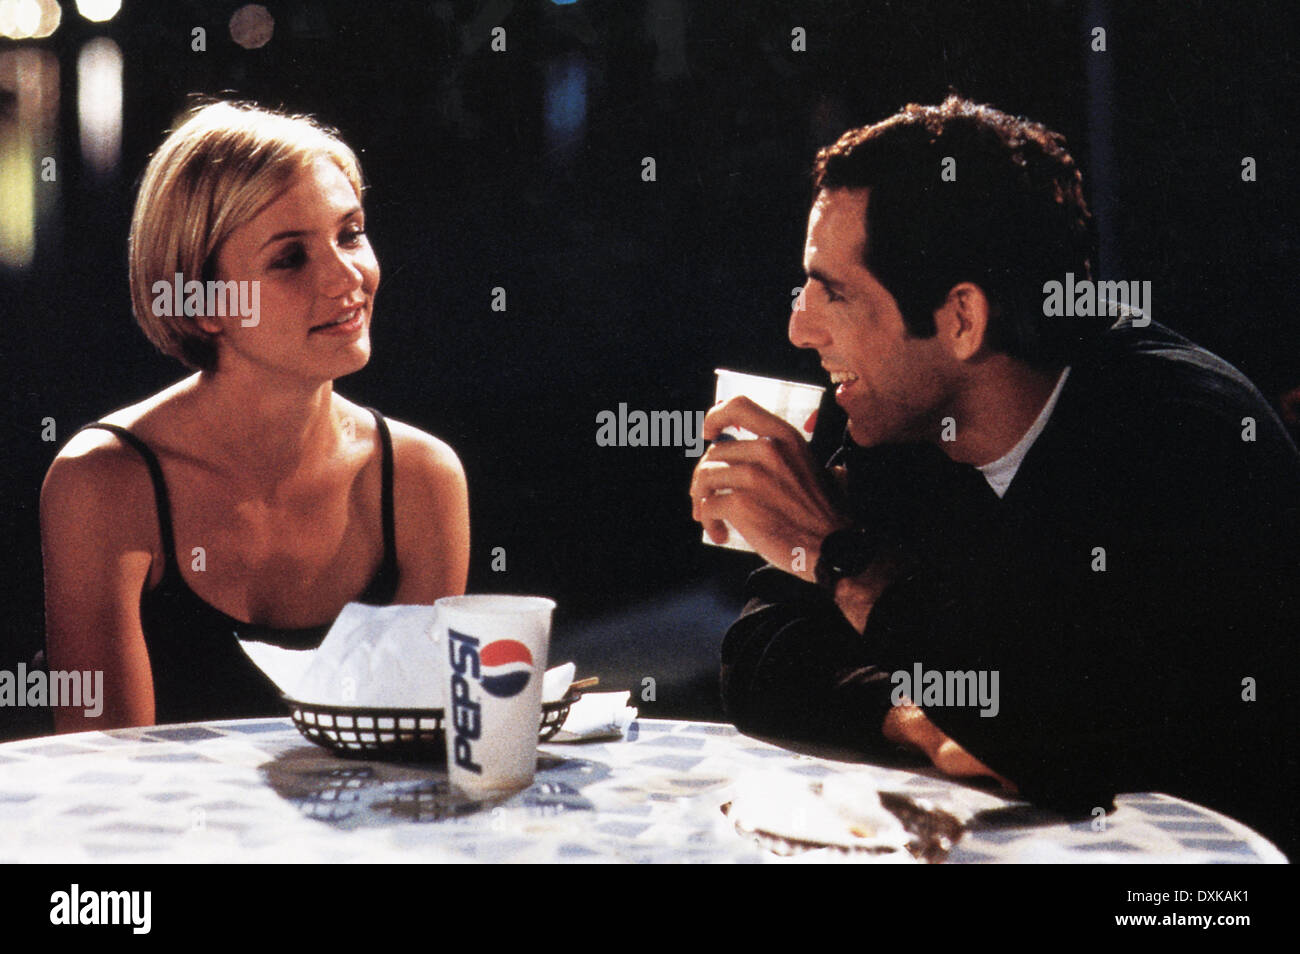 THERE'S SOMETHING ABOUT MARY (US1998) CAMERON DIAZ, BEN STIL - Stock Image